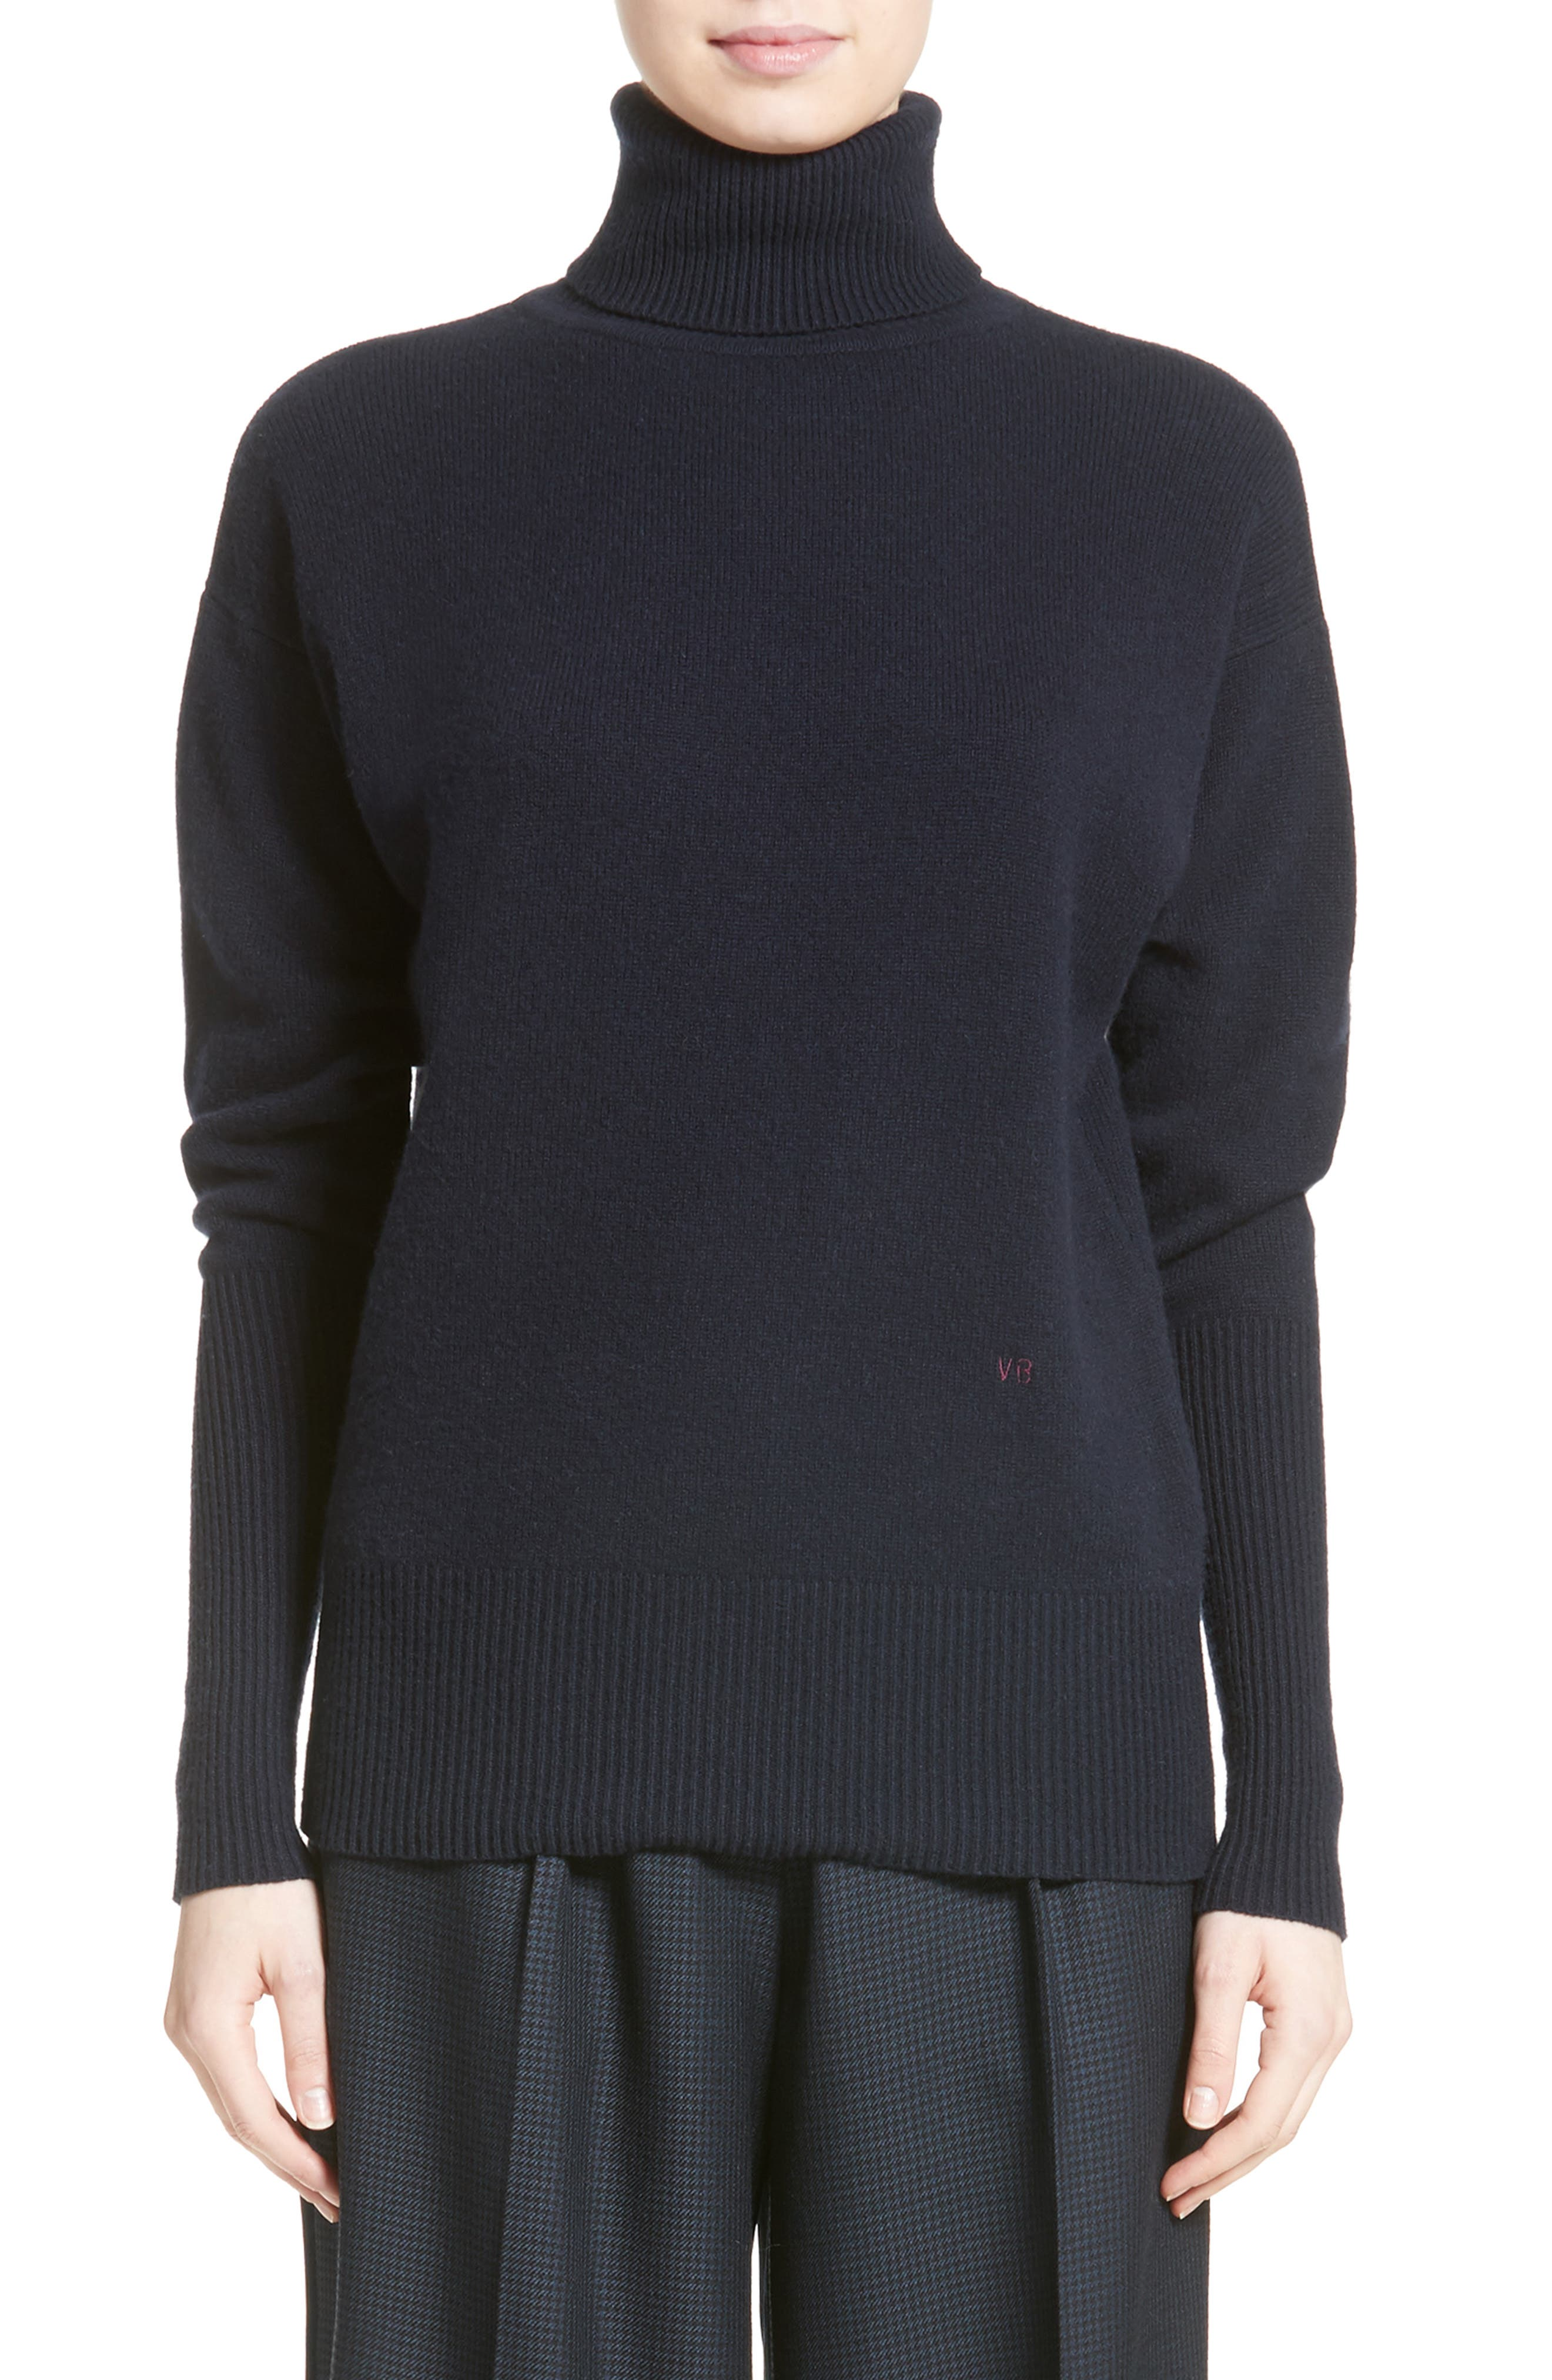 Alternate Image 1 Selected - Victoria Beckham Cashmere Turtleneck Sweater